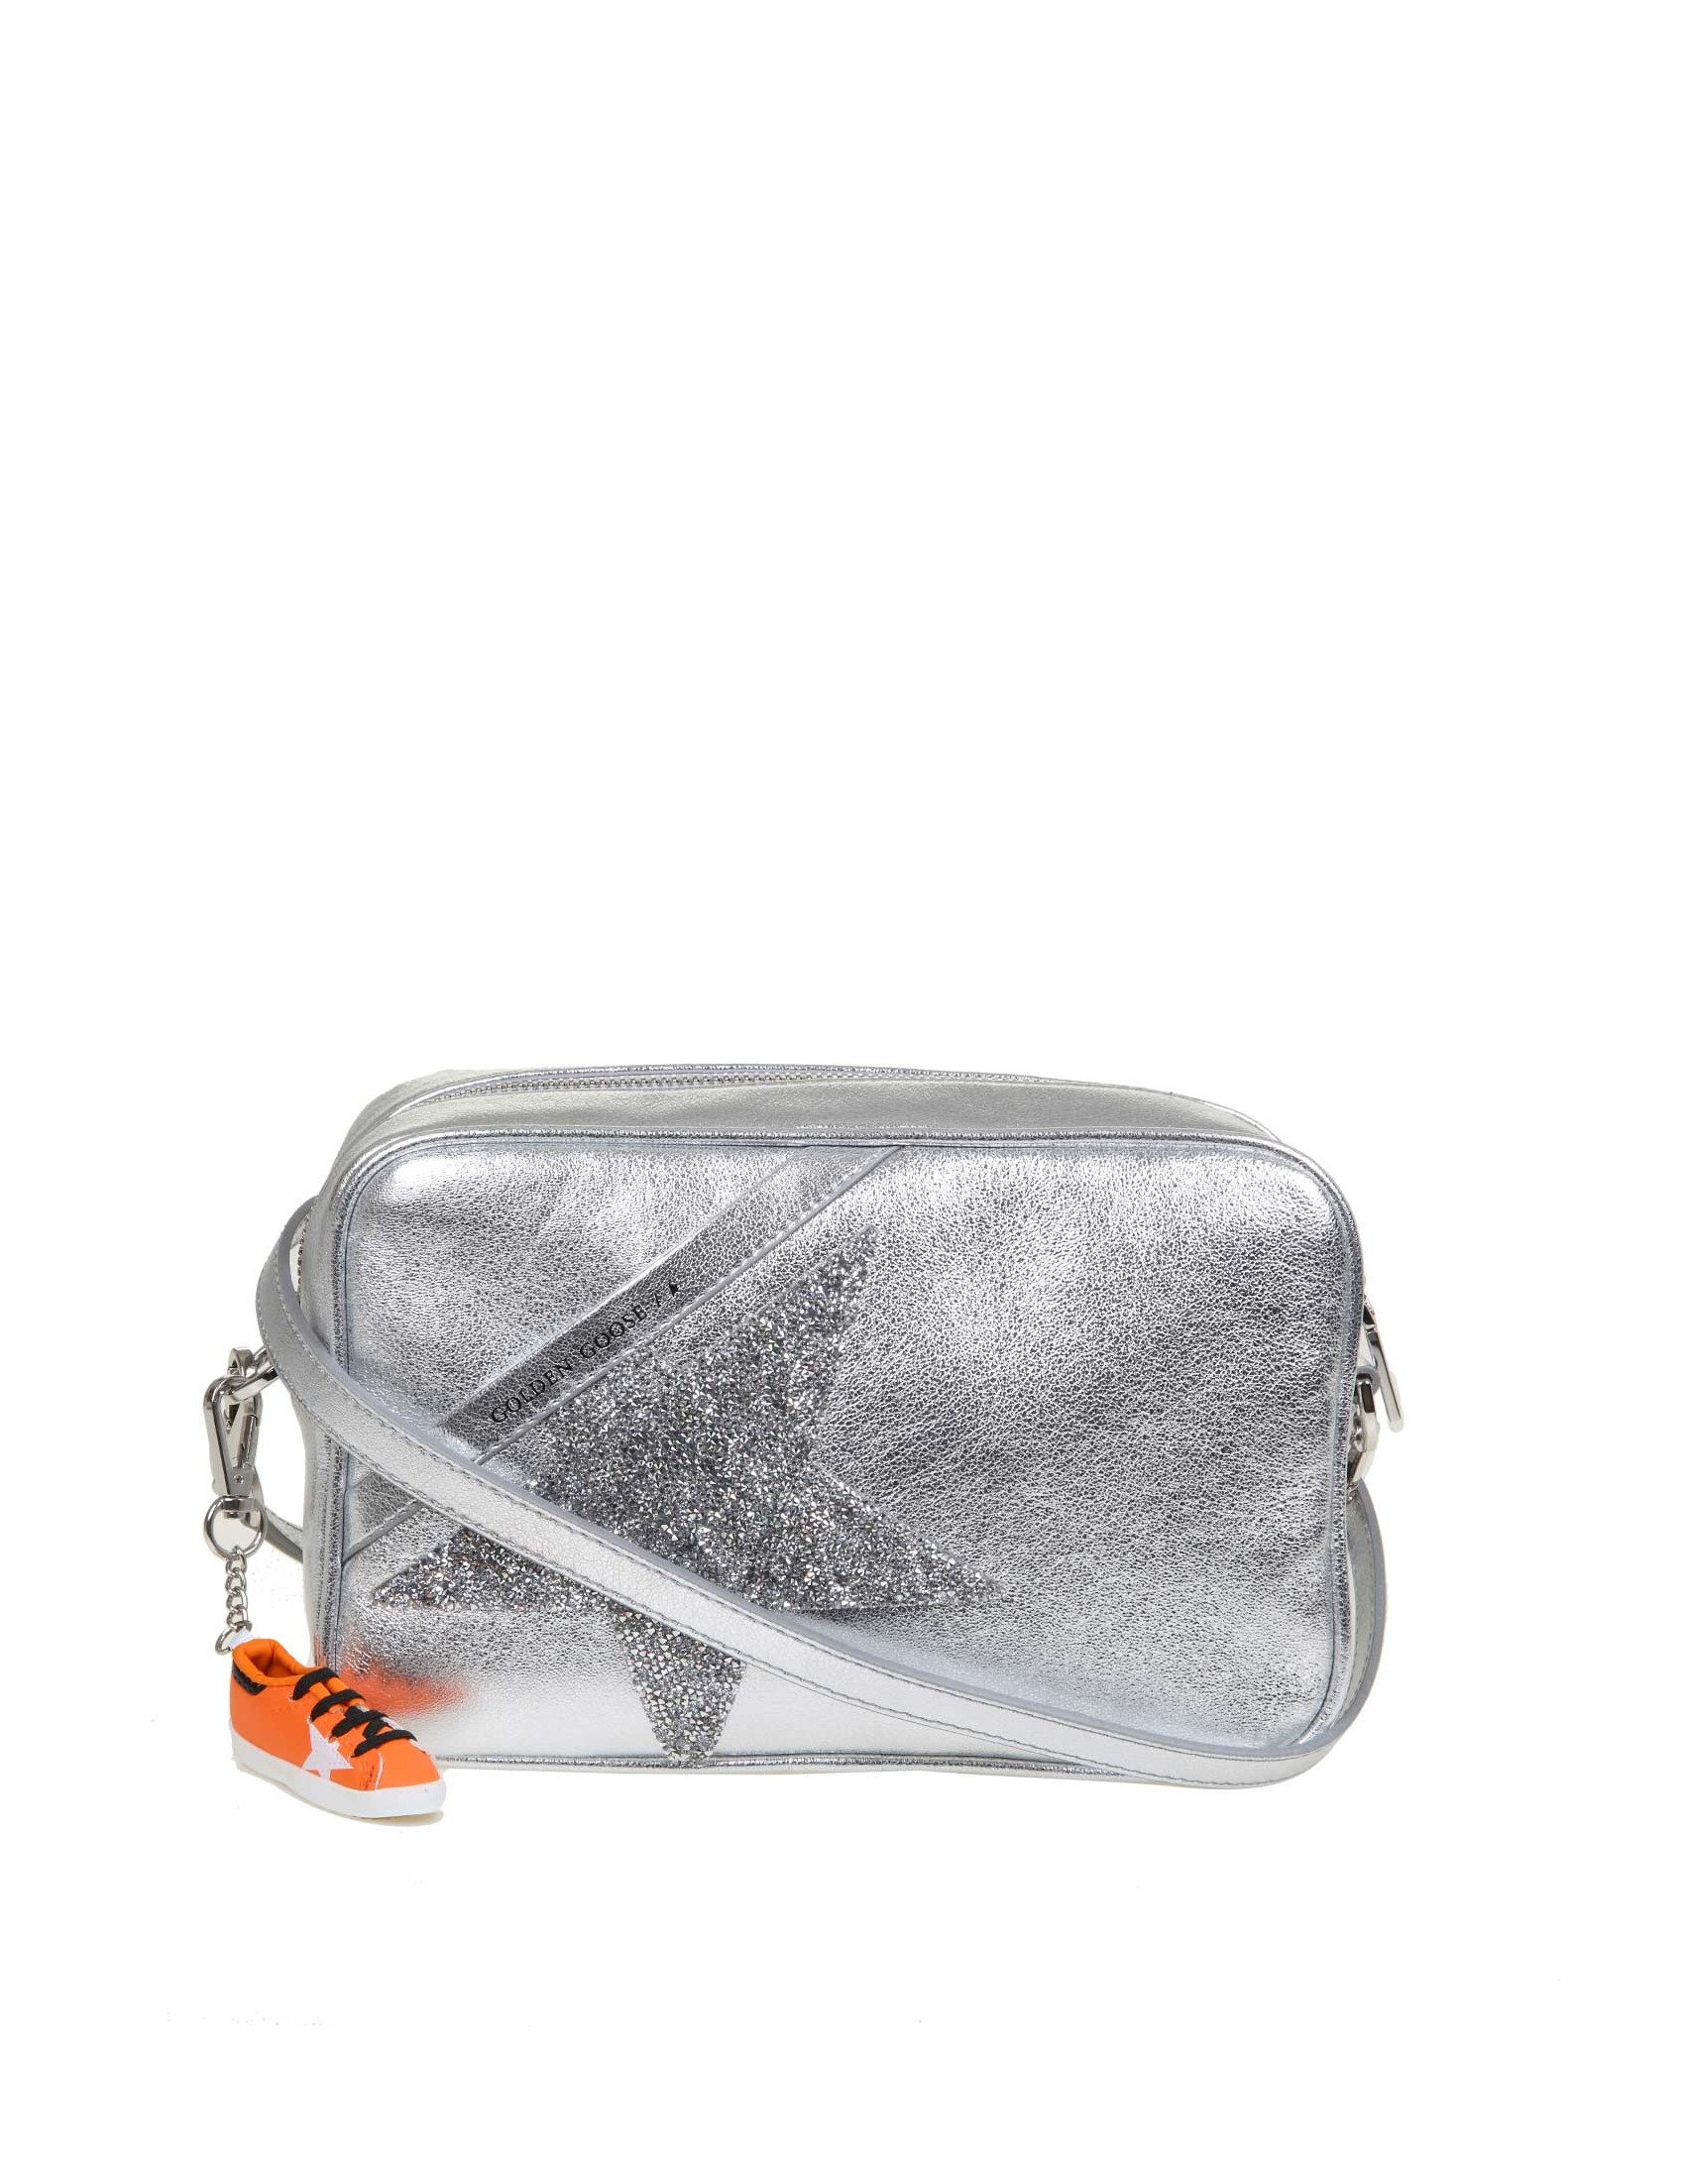 GOLDEN GOOSE GOLDEN GOOSE STAR BAG SHOULDER BAG IN LAMINATED LEATHER